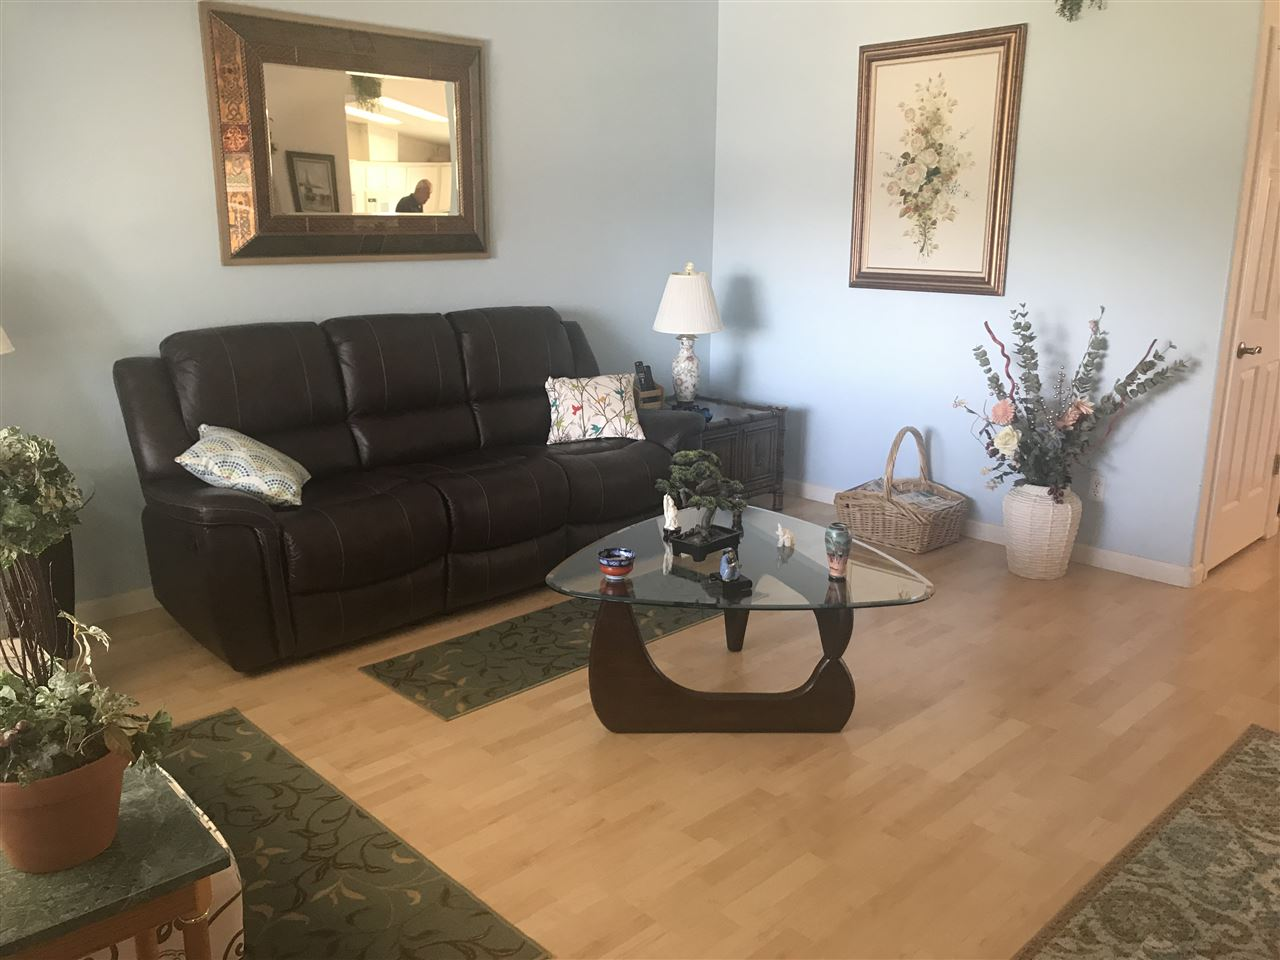 Additional photo for property listing at 4290 HAWK DRIVE ,Churchill 4290 HAWK DRIVE Fallon, Nevada 89406 United States